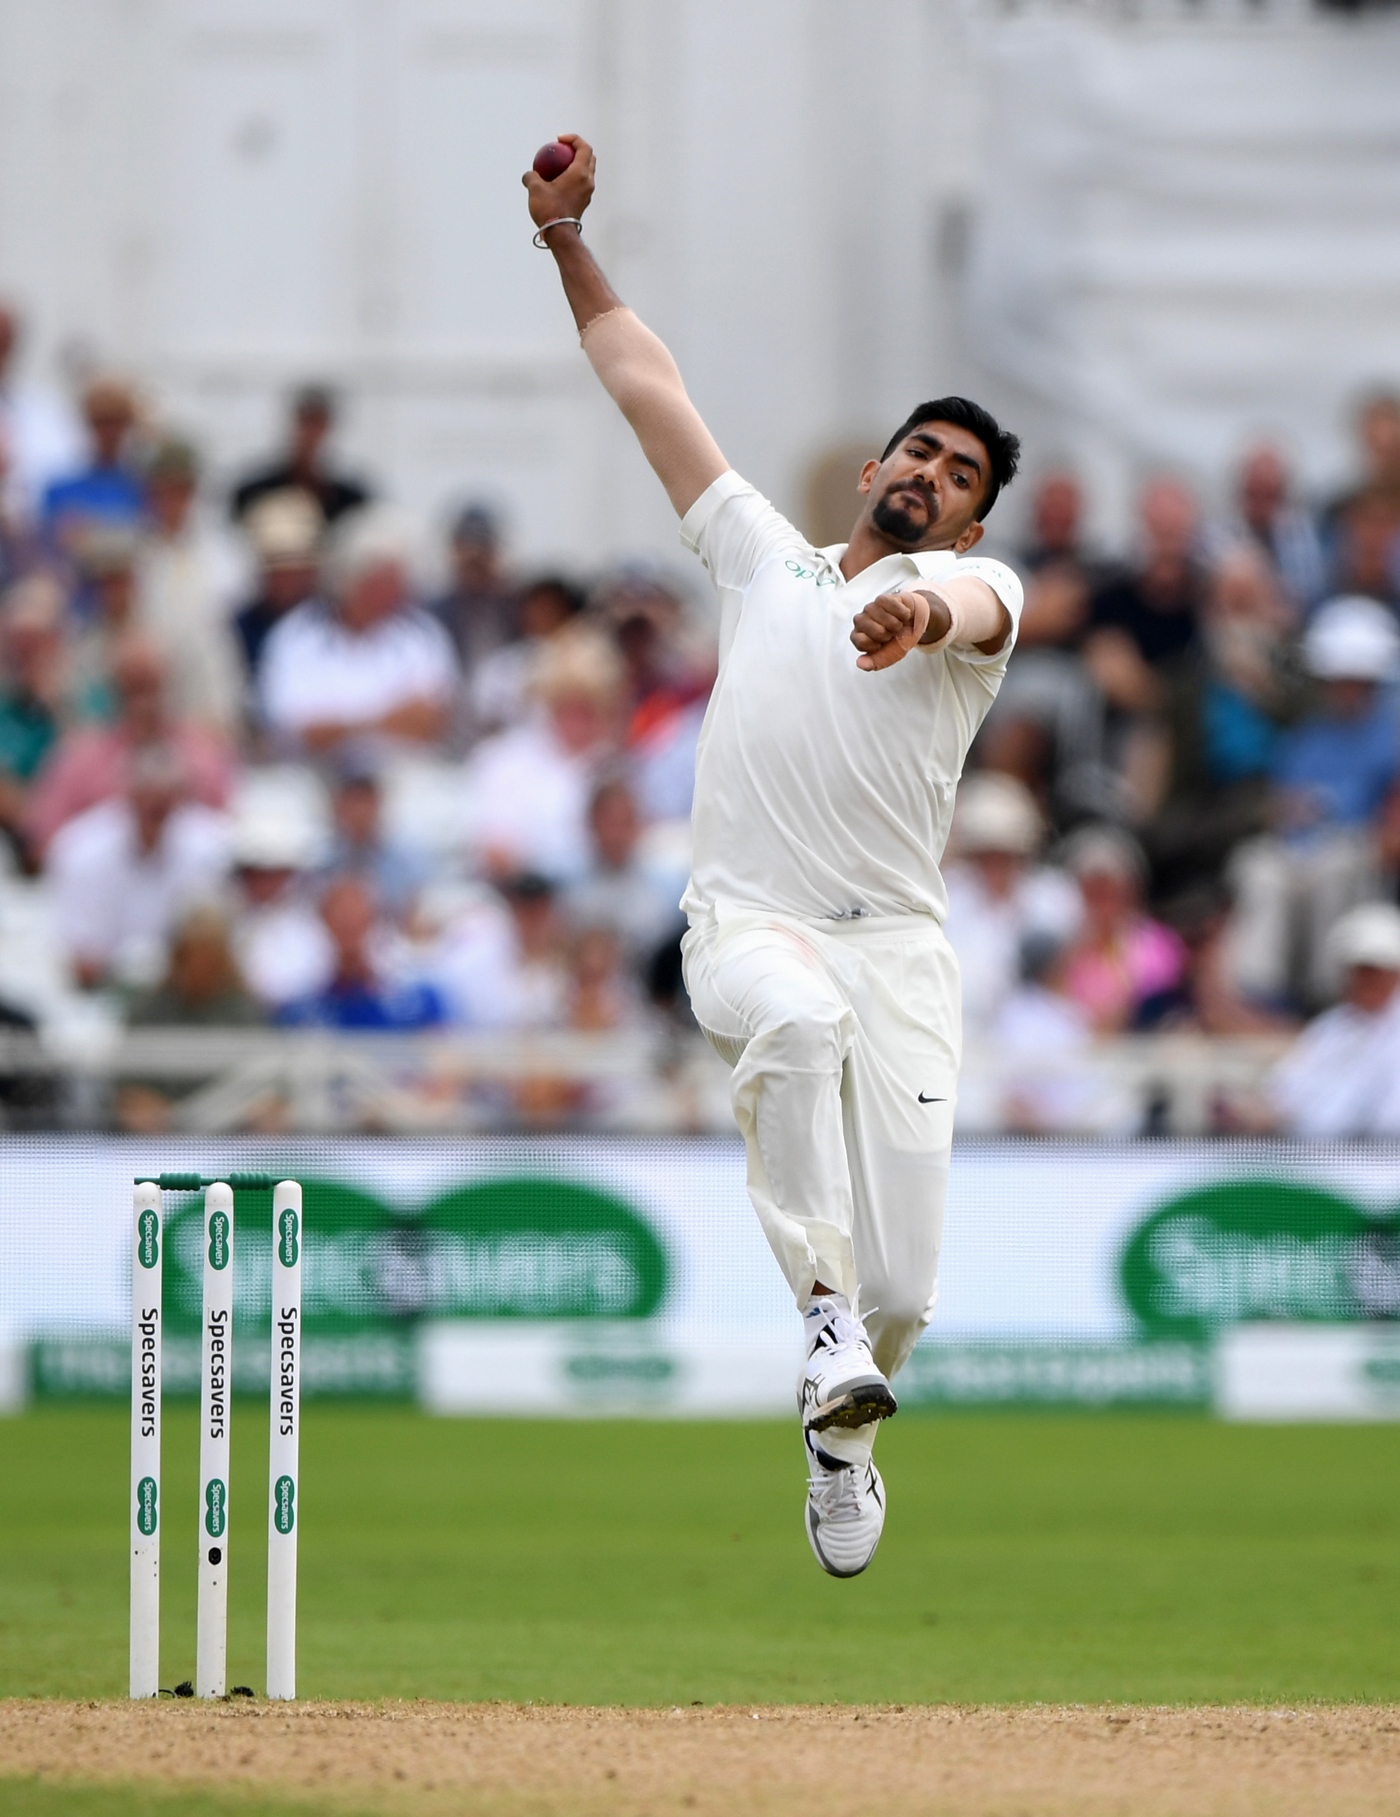 ENG vs IND 2018: I Would Still Not Have Jasprit Bumrah As My Opening Bowler: Michael Holding